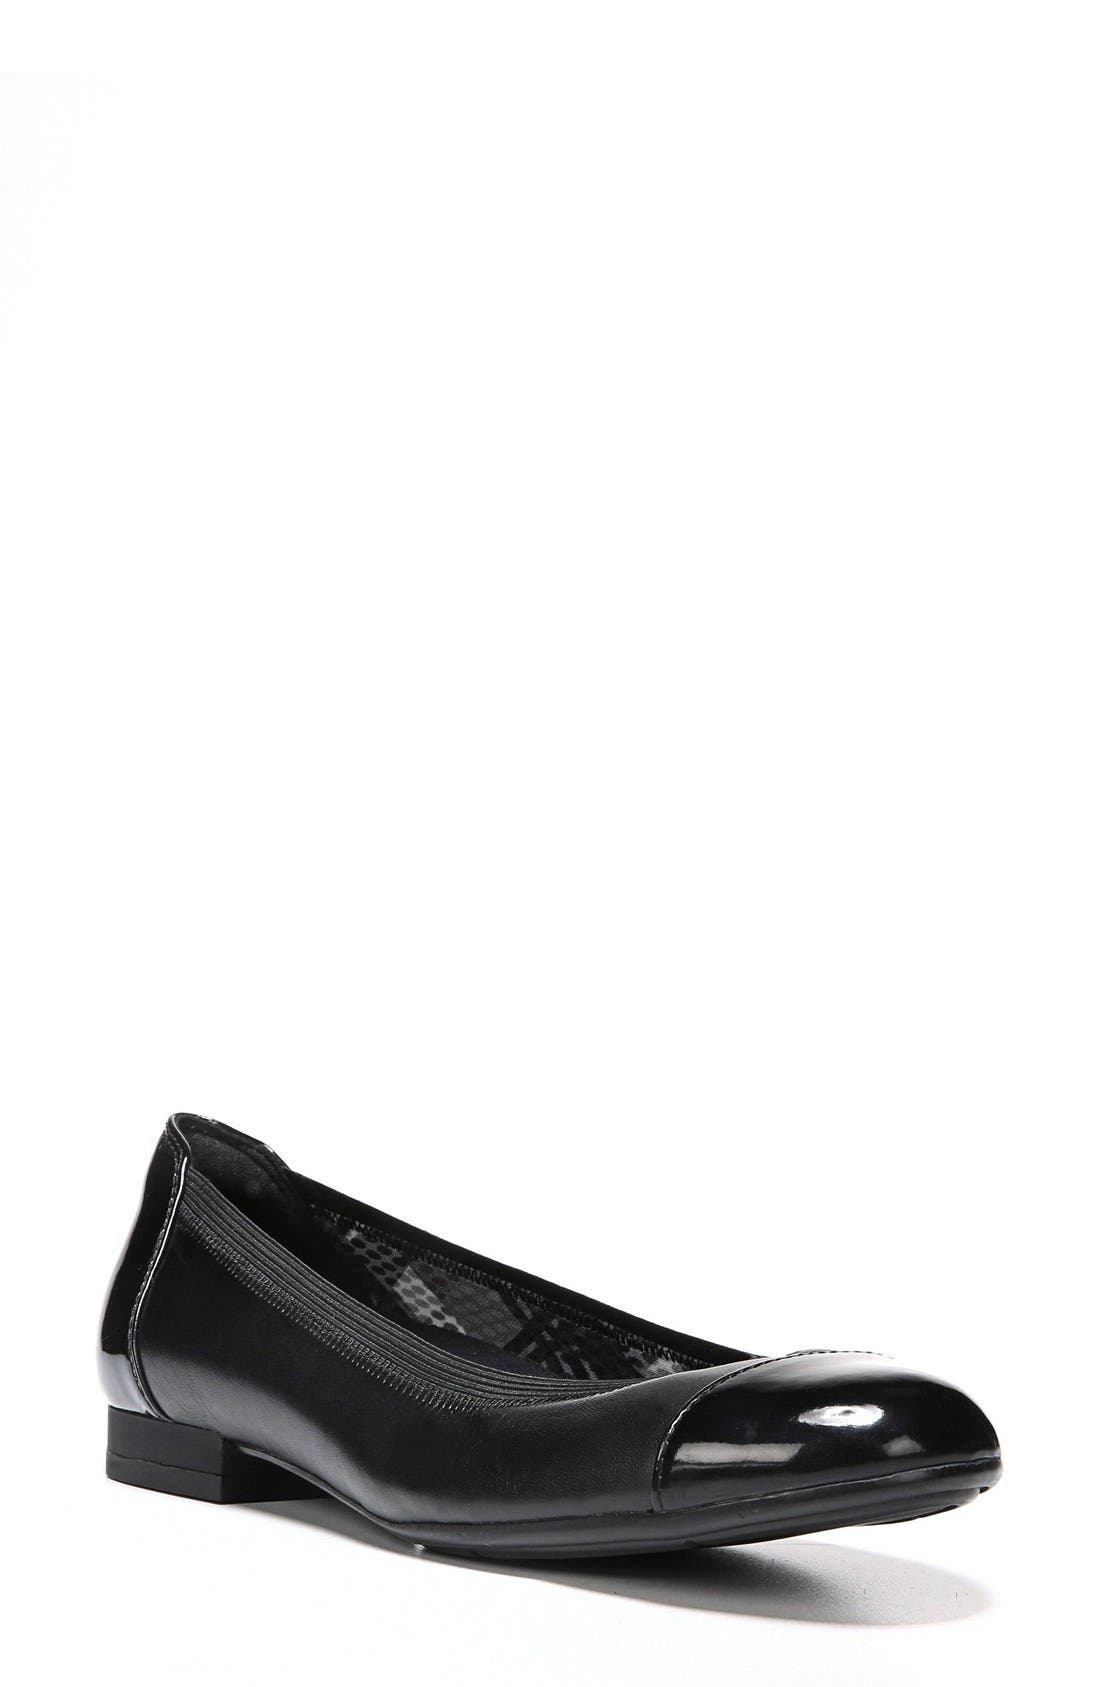 Naturalizer 'Therese' Cap Toe Flat (Women)